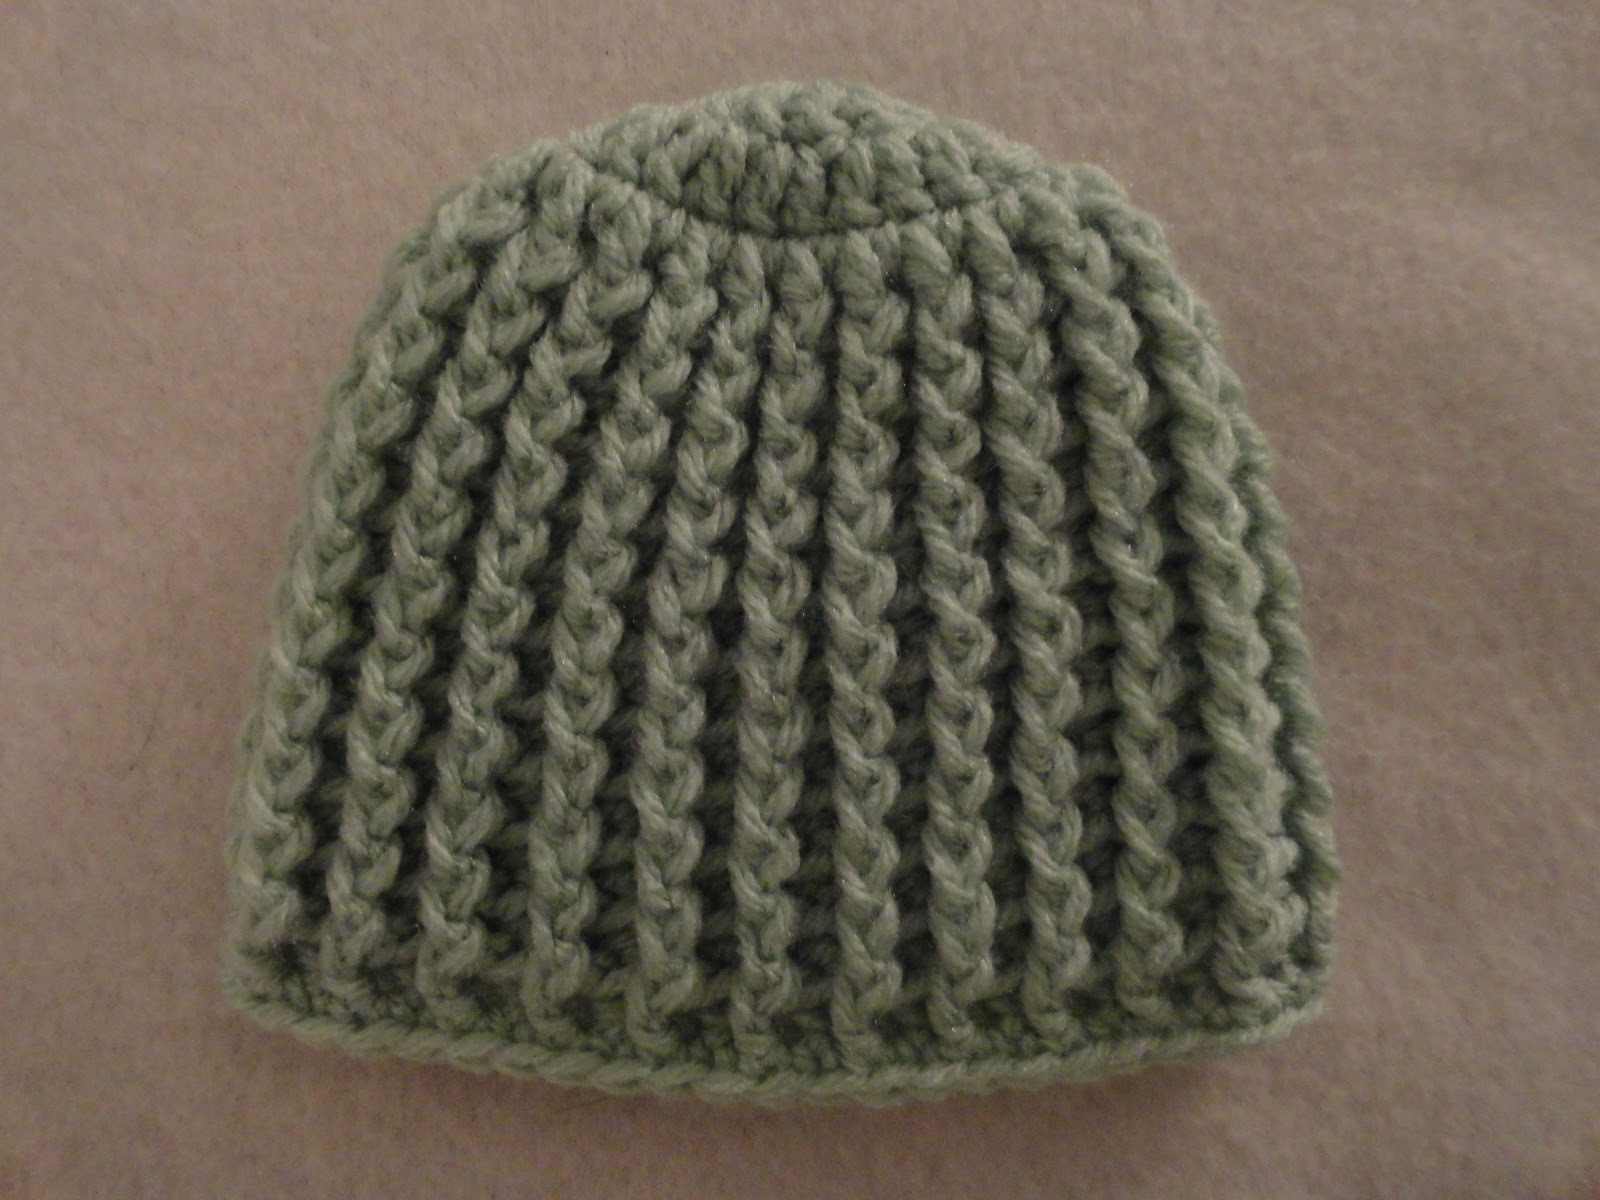 Crocheting Ribbing : Crochet Crazy Mama: Crochet Ribbed Baby Hats